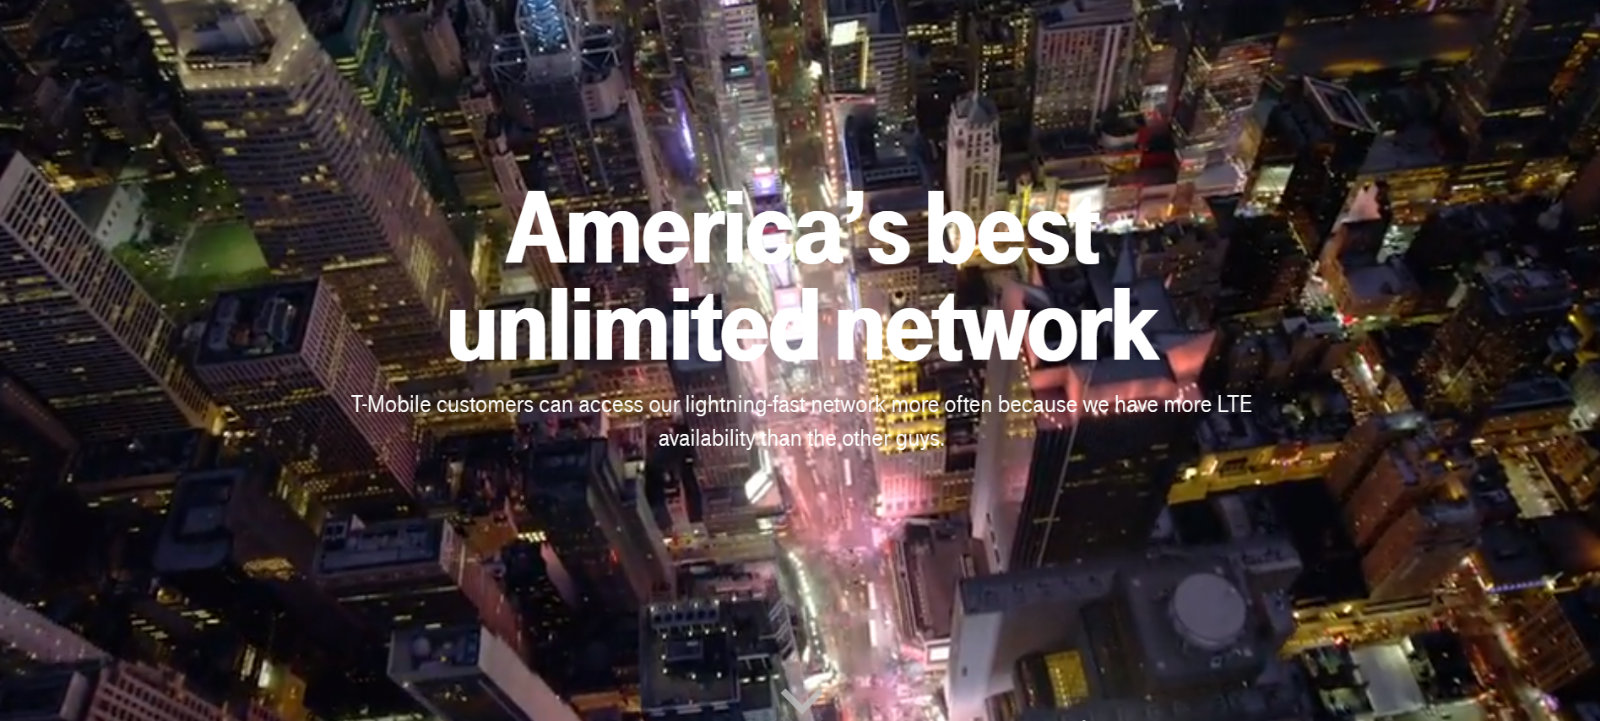 1st & 2nd Month Preloaded T-Mobile $75 Unlimited 4G & $50 10GB SIM Cards 4